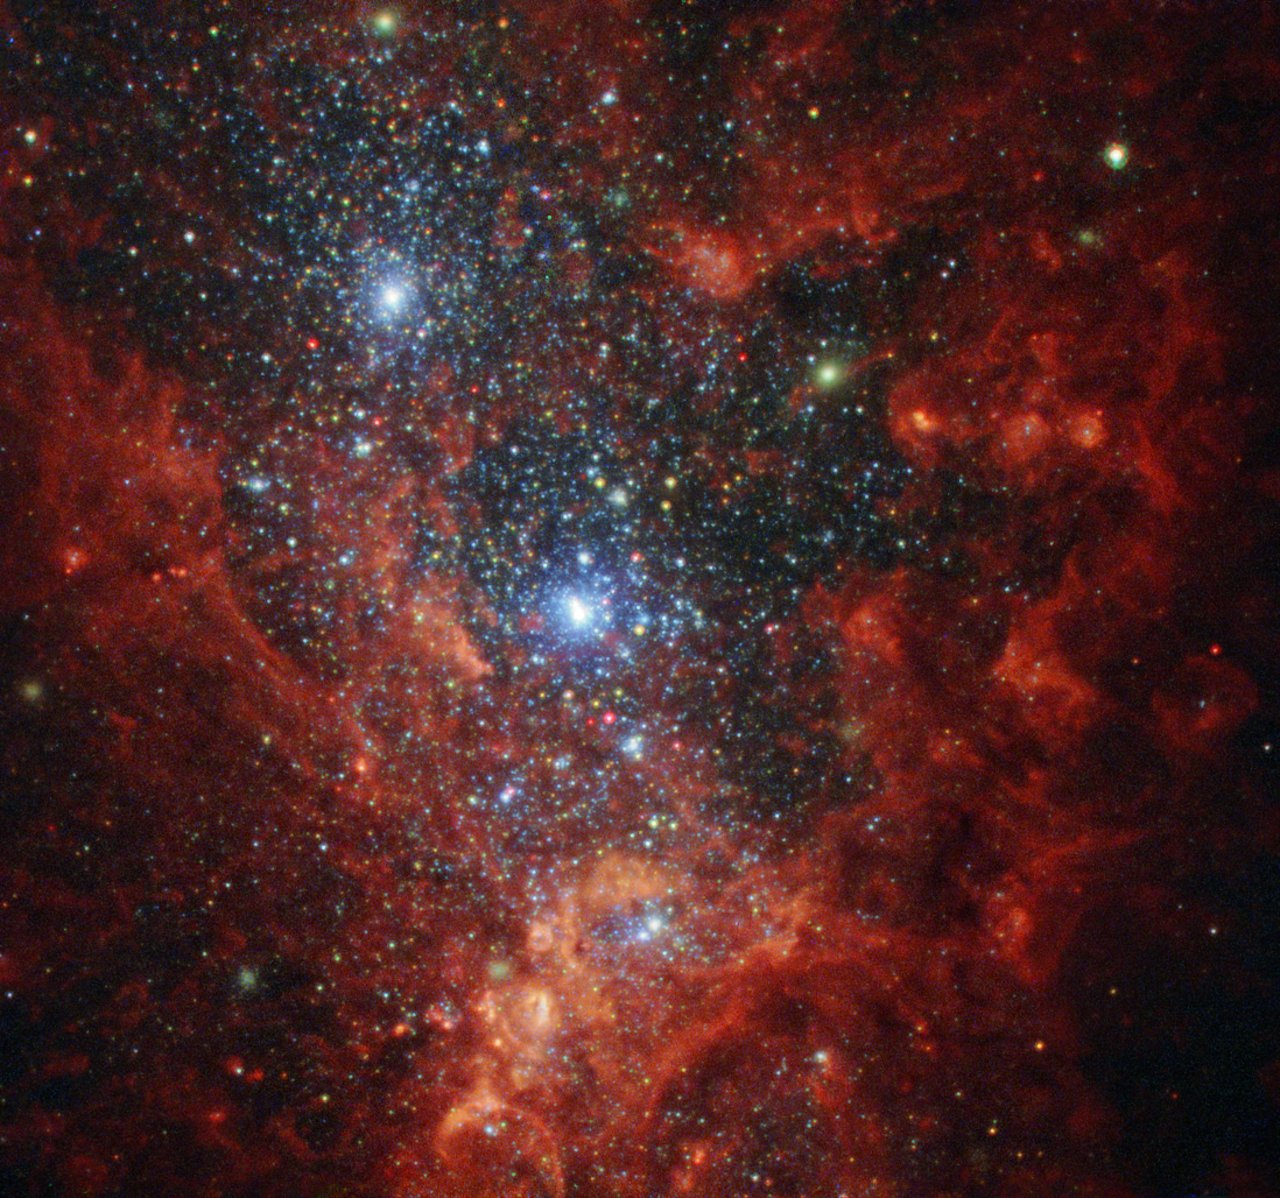 Hotbed of Vigorous Star Formation (http://www.nasa.gov/image-feature/goddard/2016/hubble-hotbed-of-vigorous-star-formation)